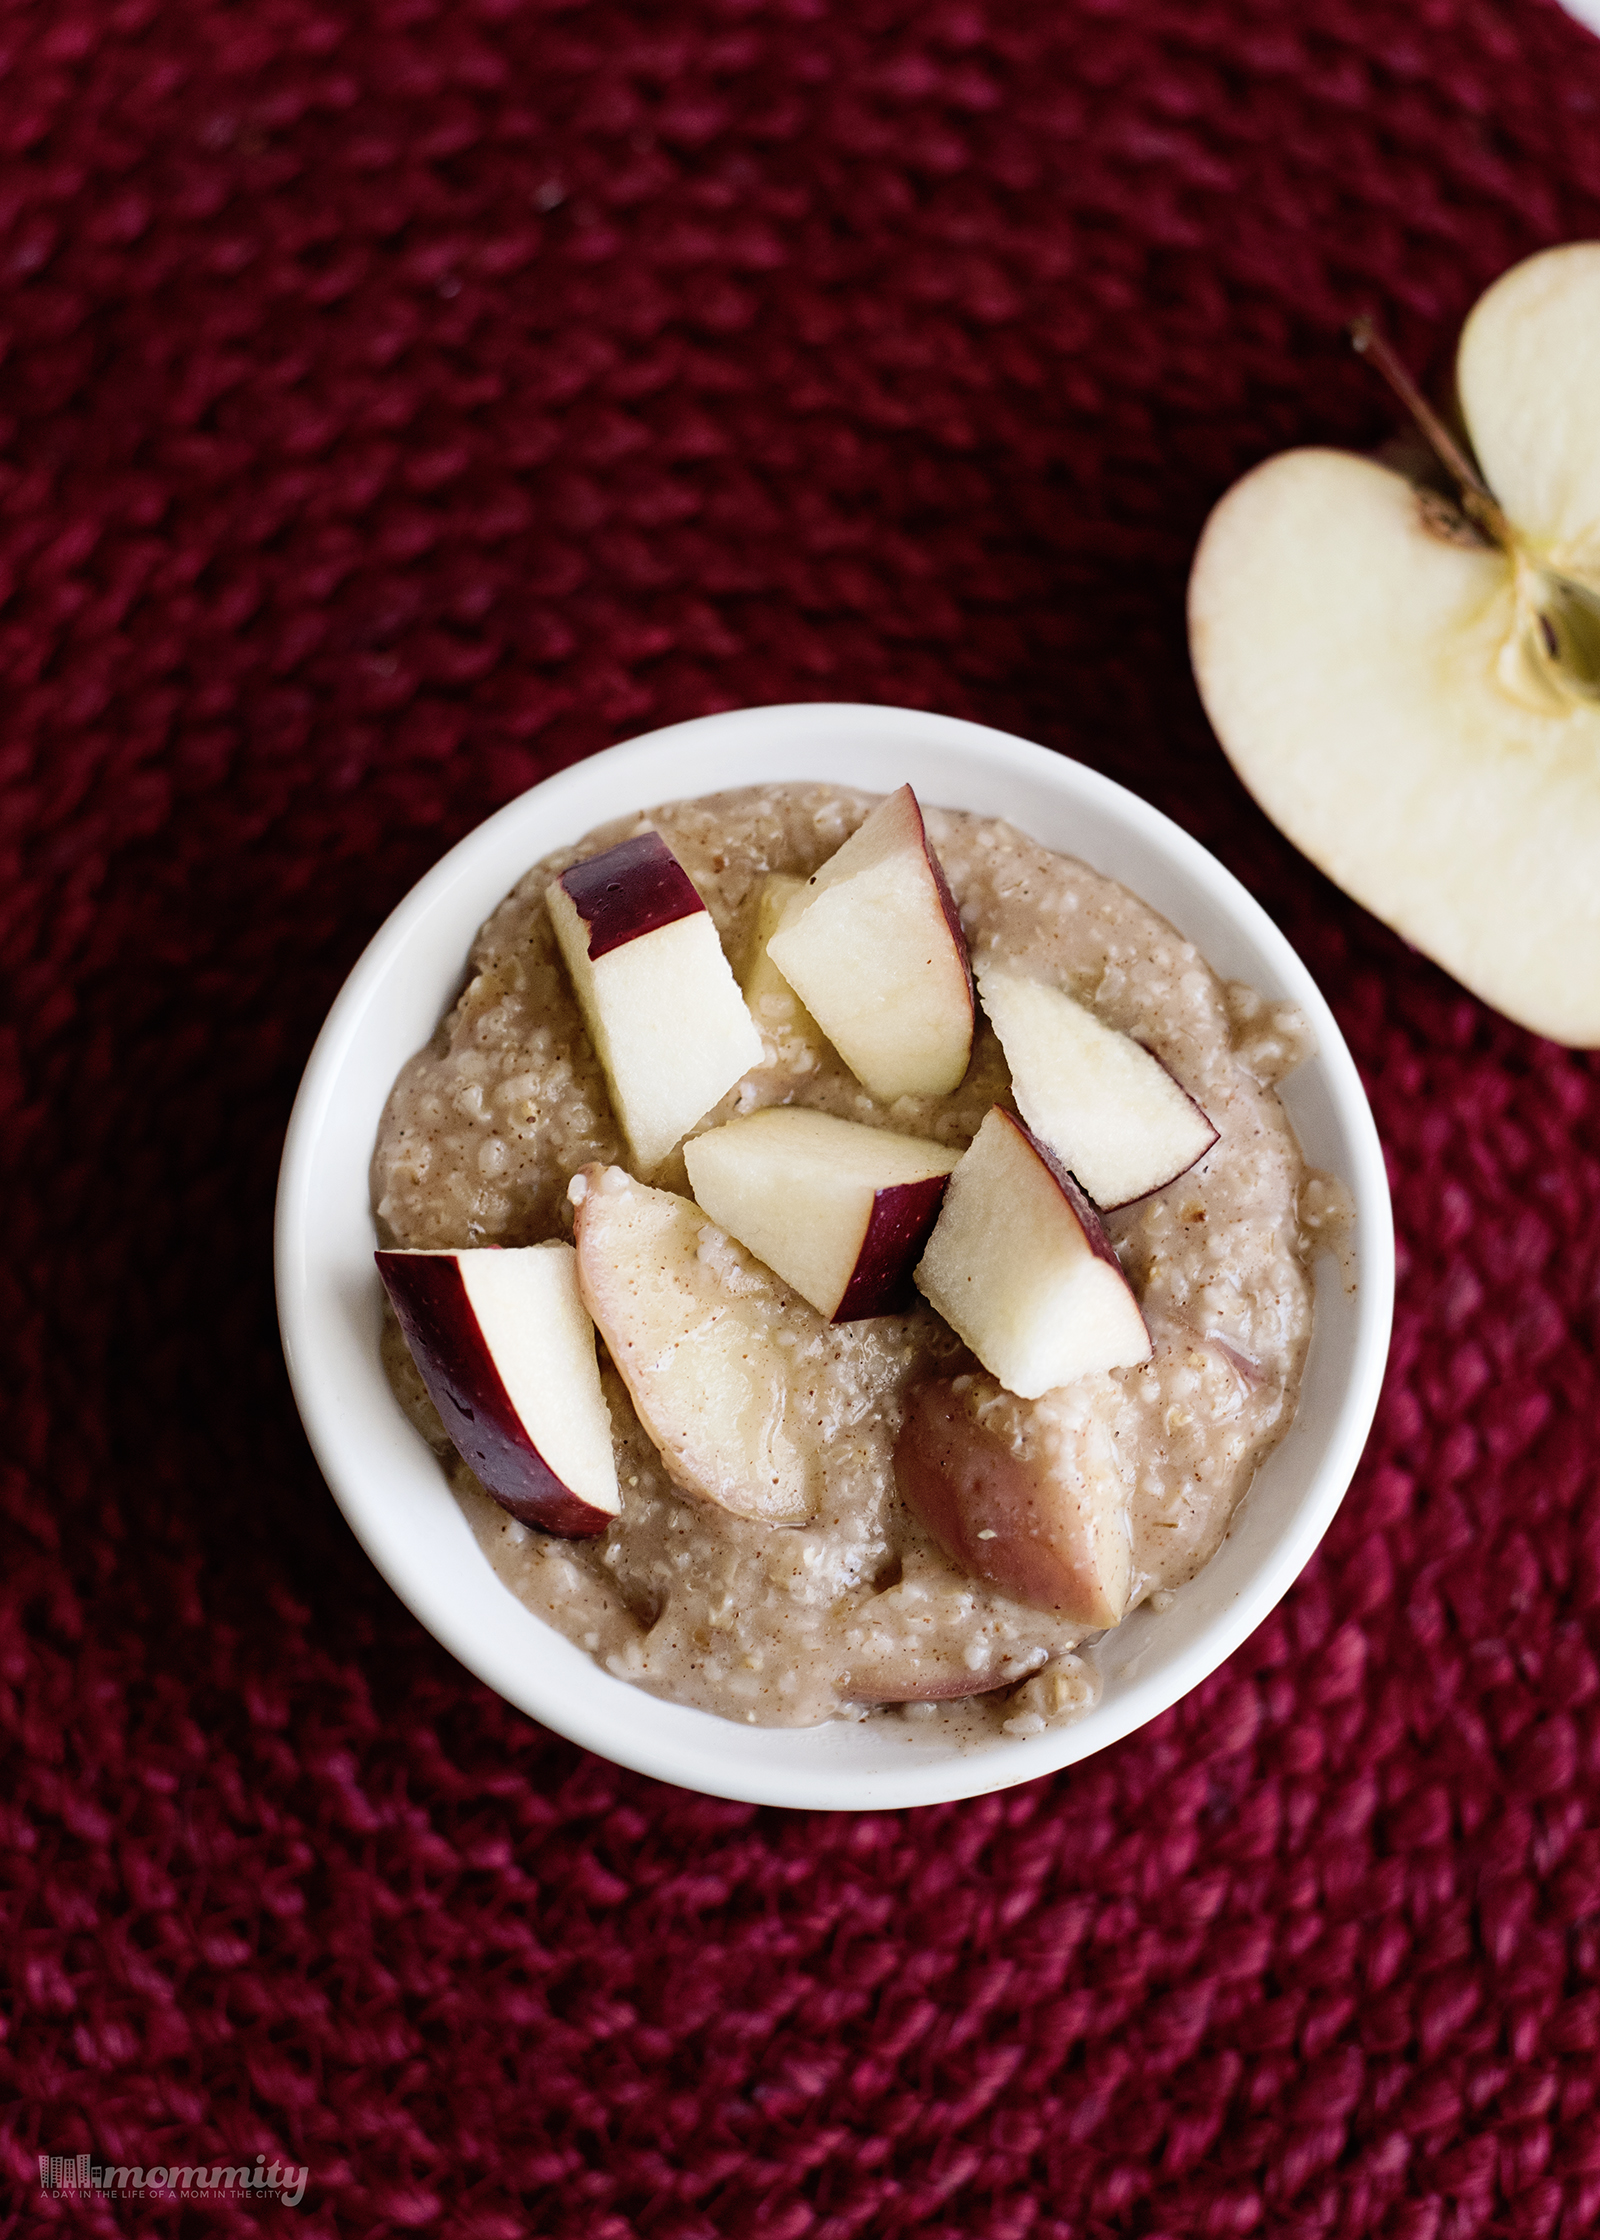 Steel Cut Oats for One - Warm Apple Pie Oatmeal